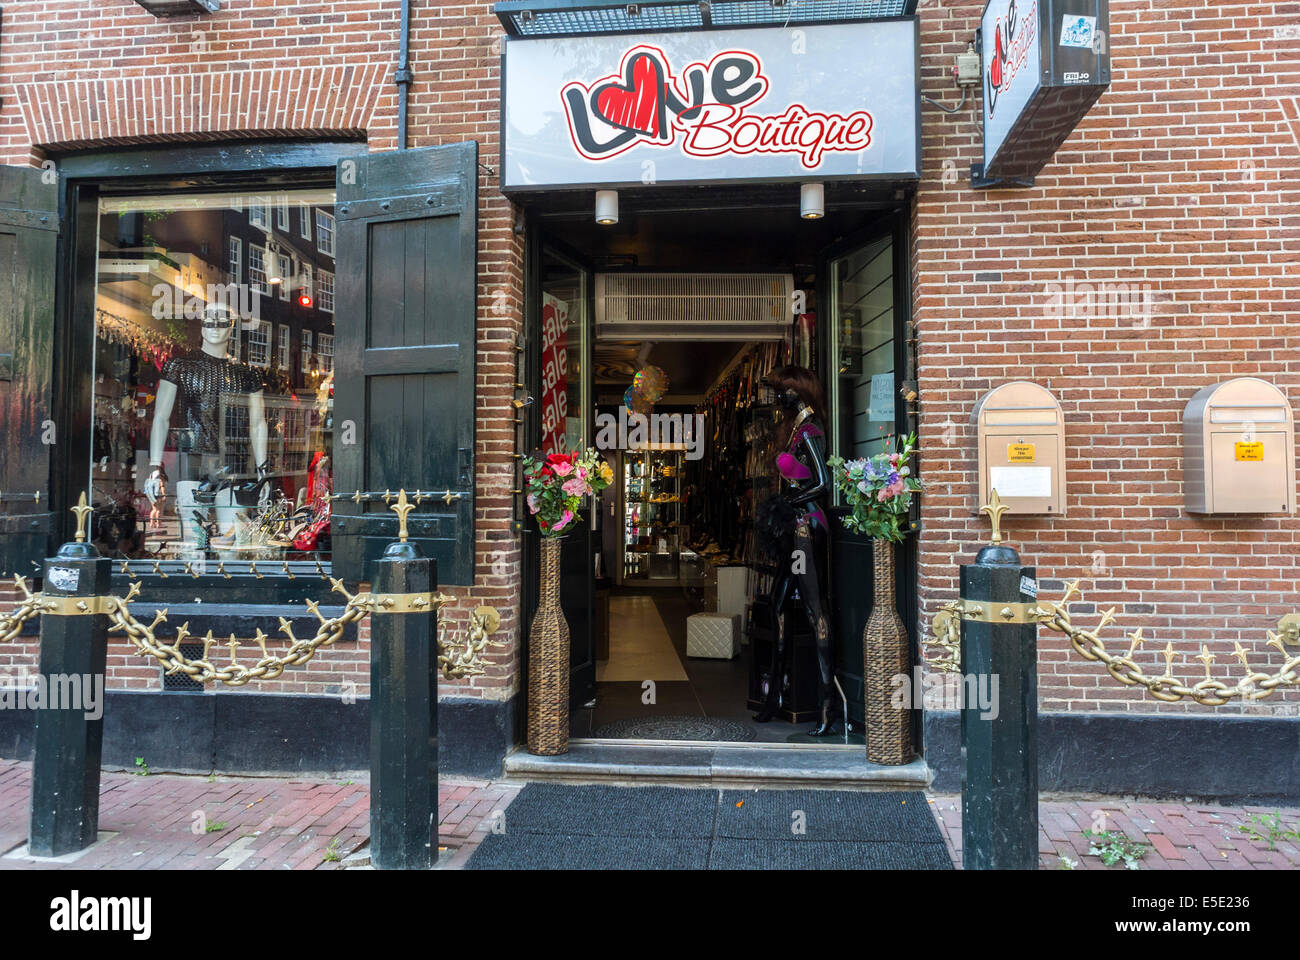 Porn shops videos from amsterdam